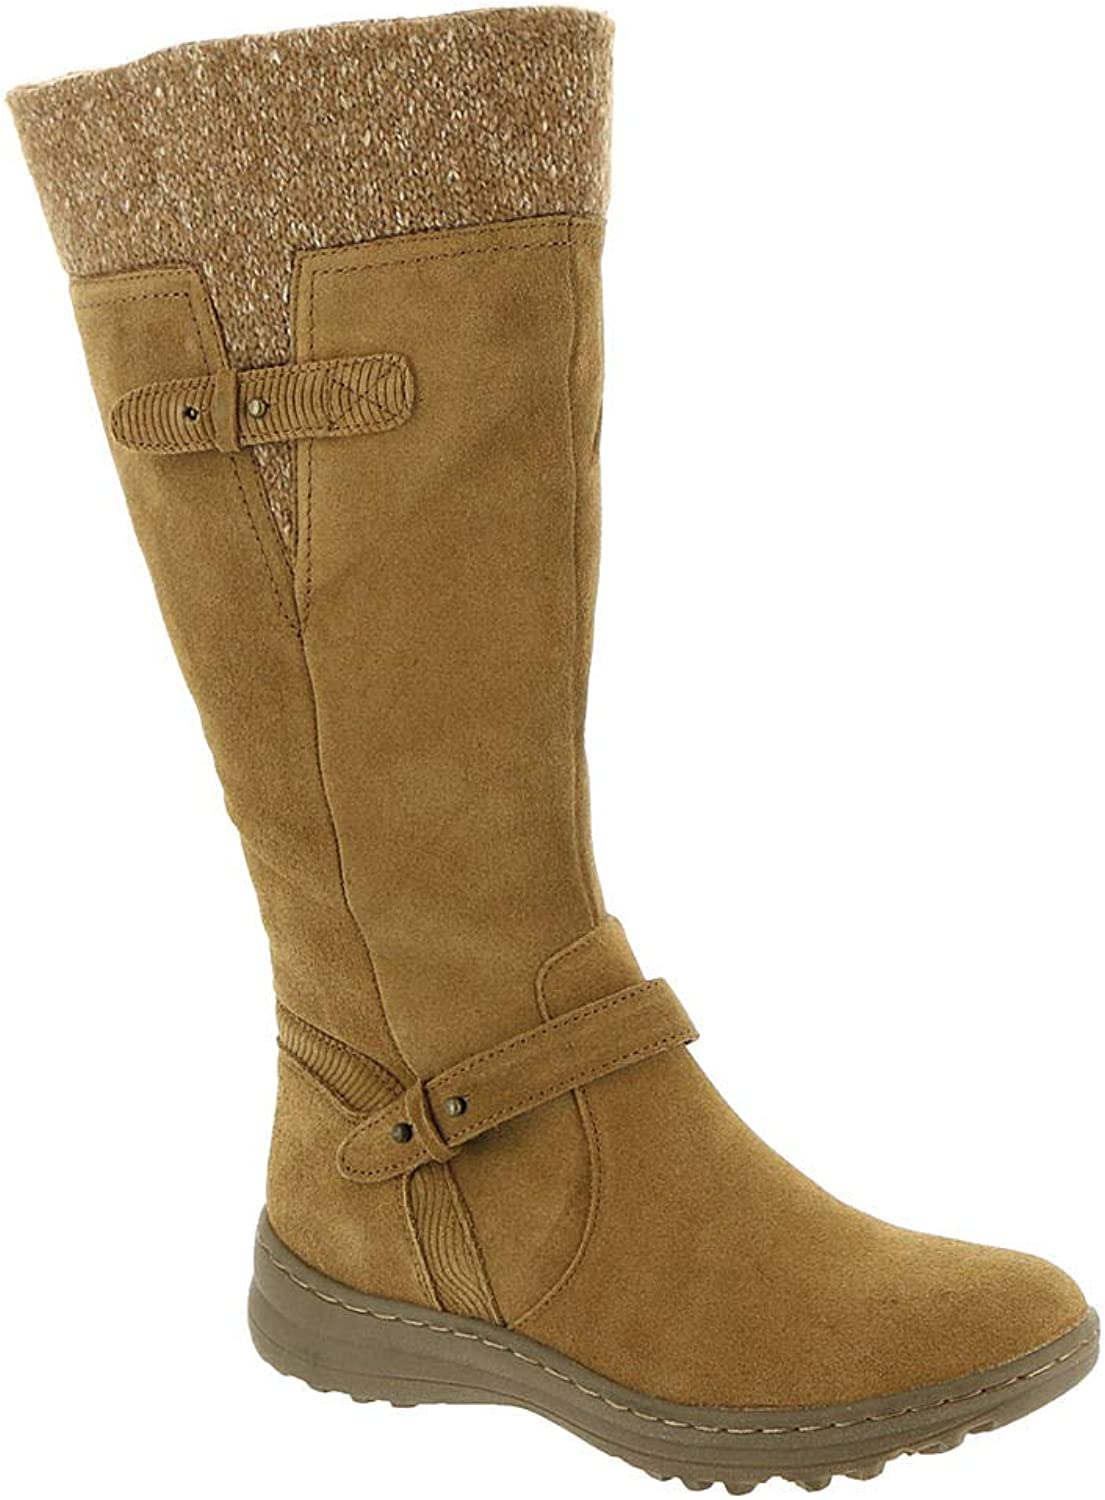 Bare Traps Womens Avalon Leather Round Toe Knee High Cold Weather Boots